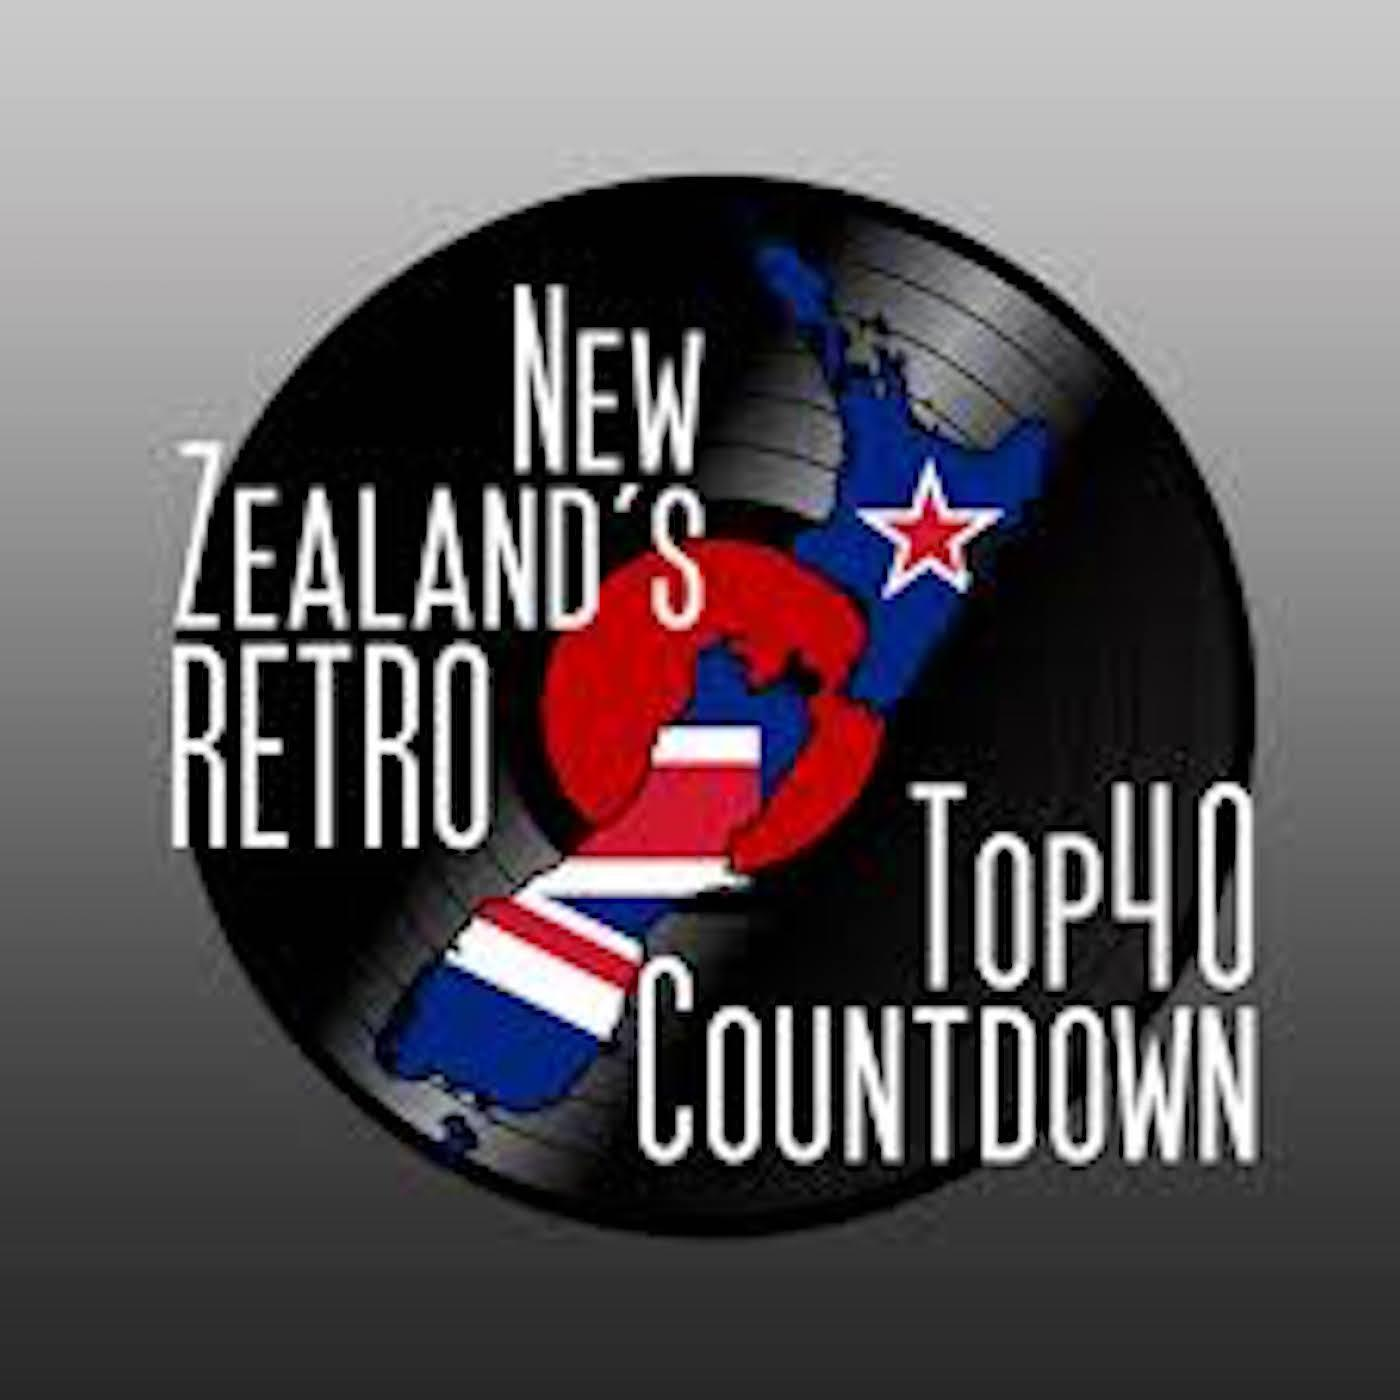 NZ Retro Weekly Top 40 Countdown